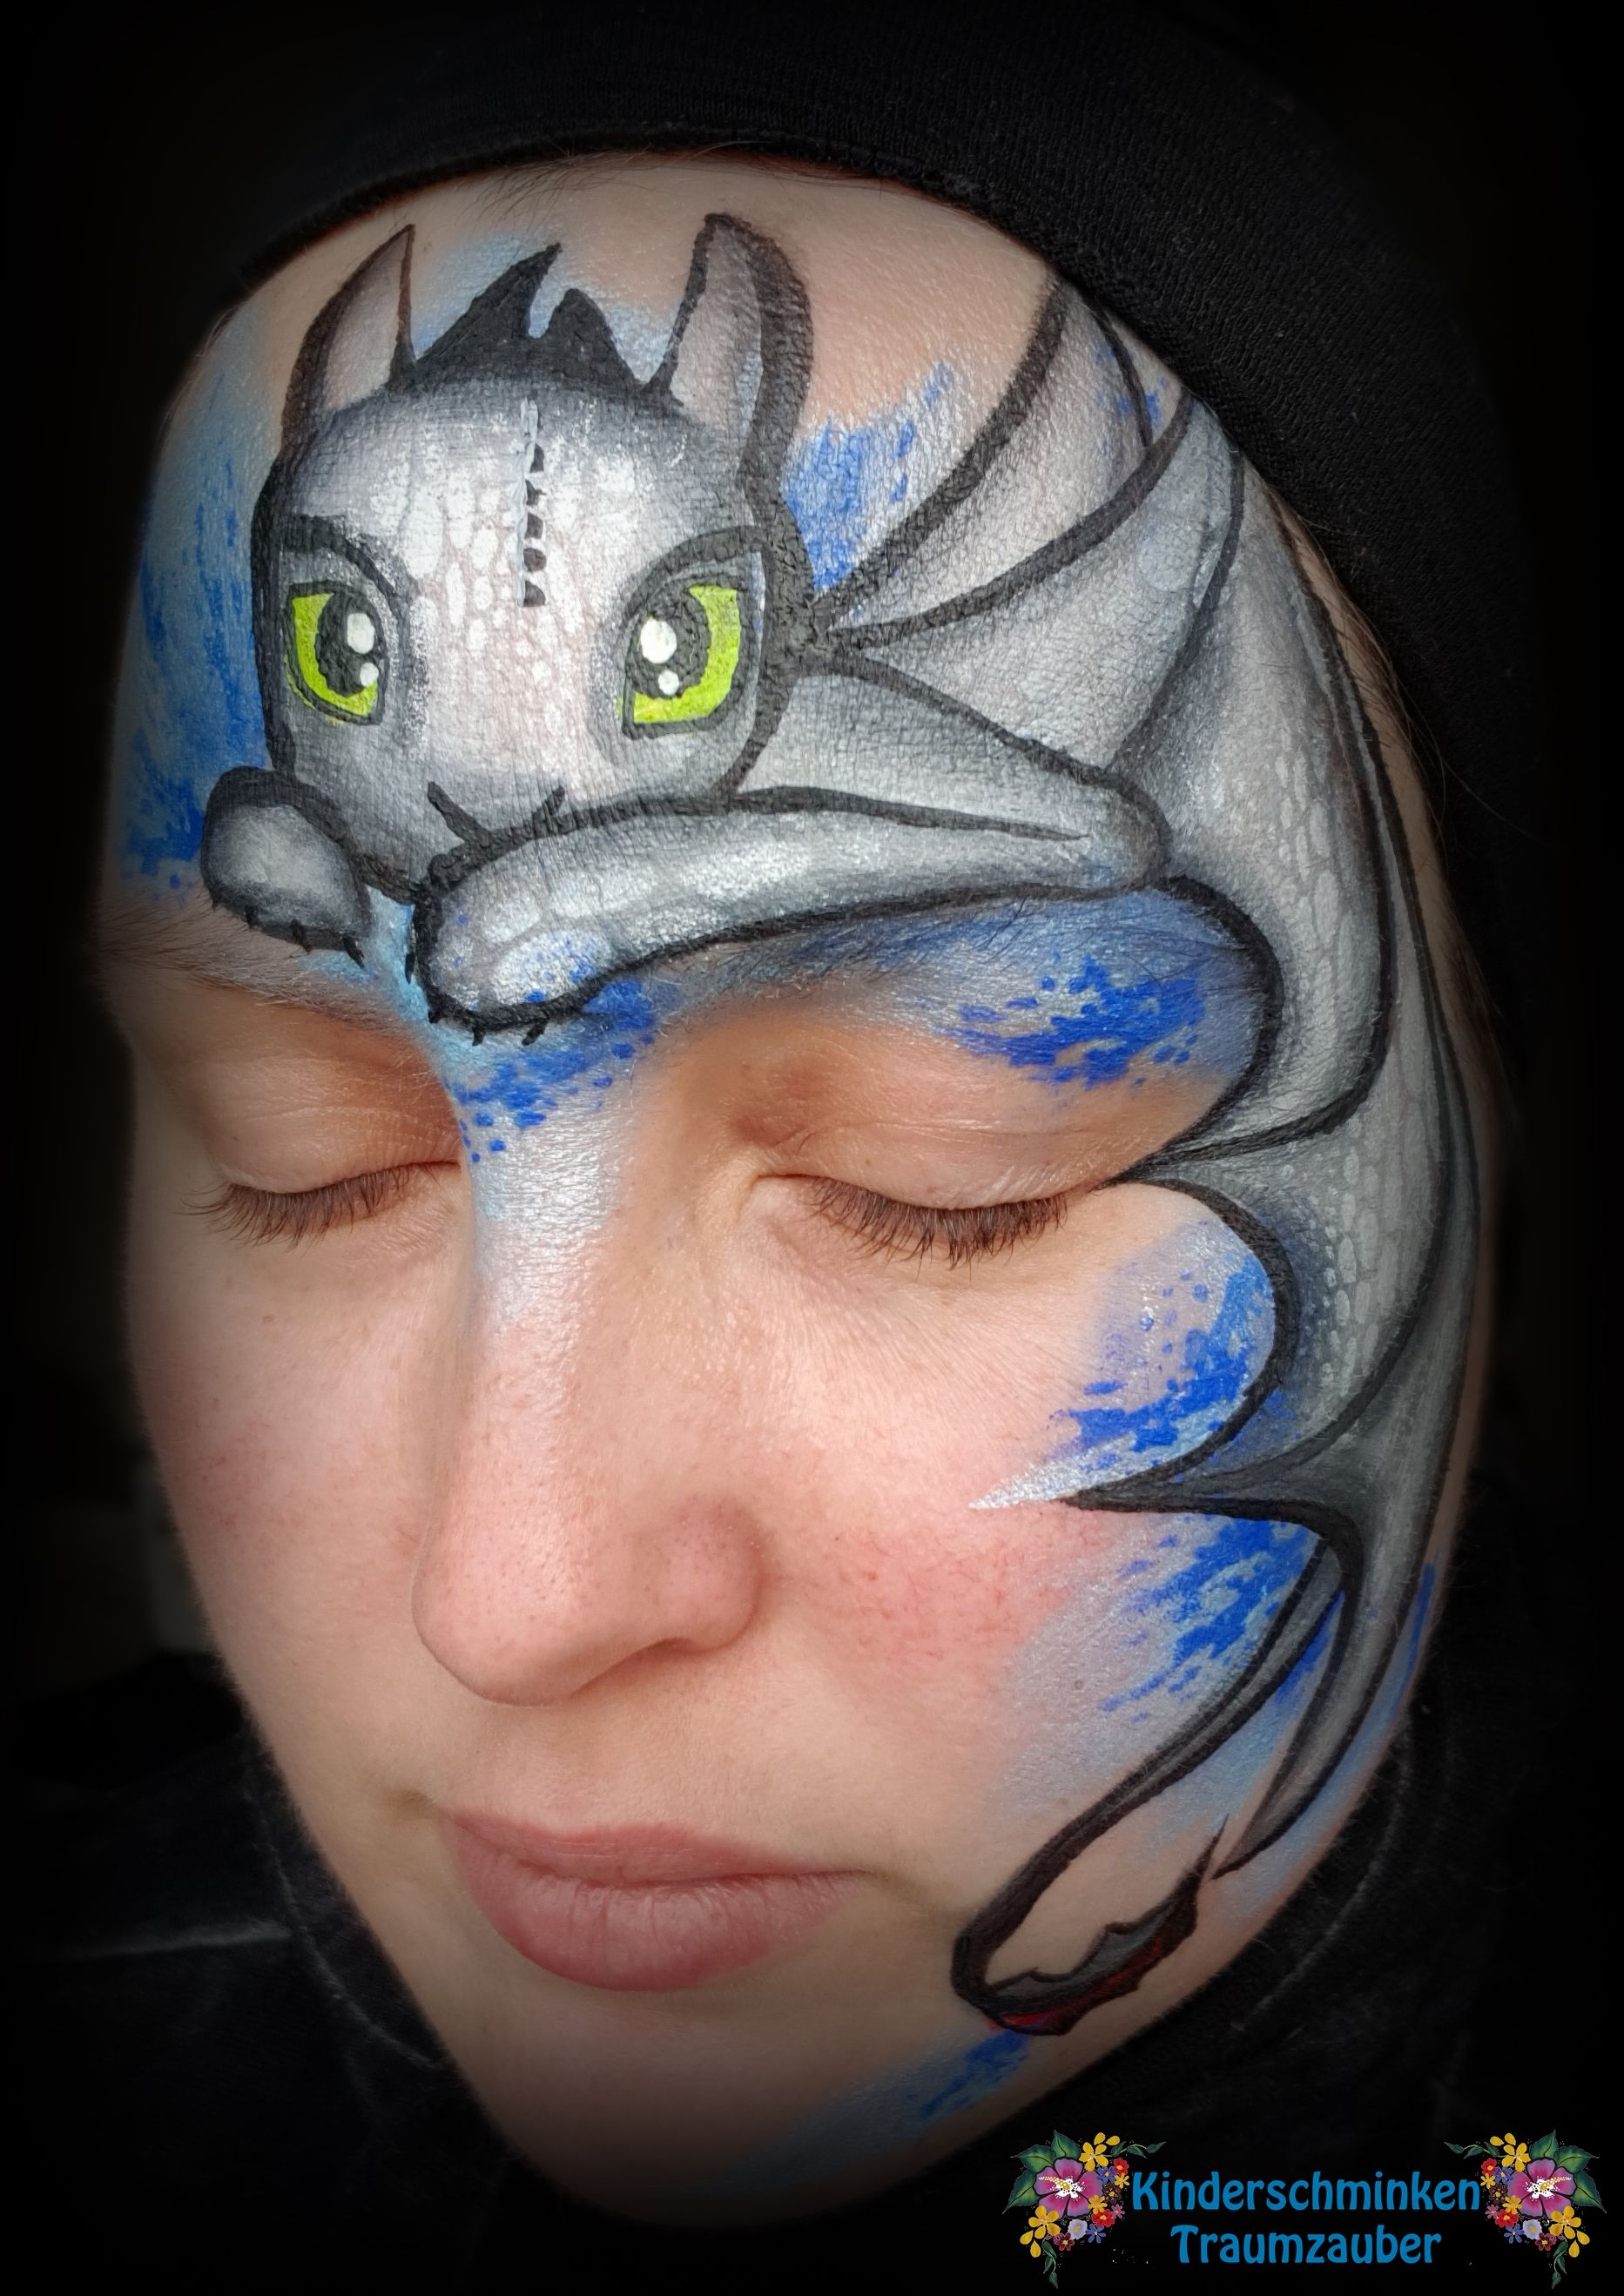 toothless Ohnezahn   Face Paintings   Pinterest   Face paintings